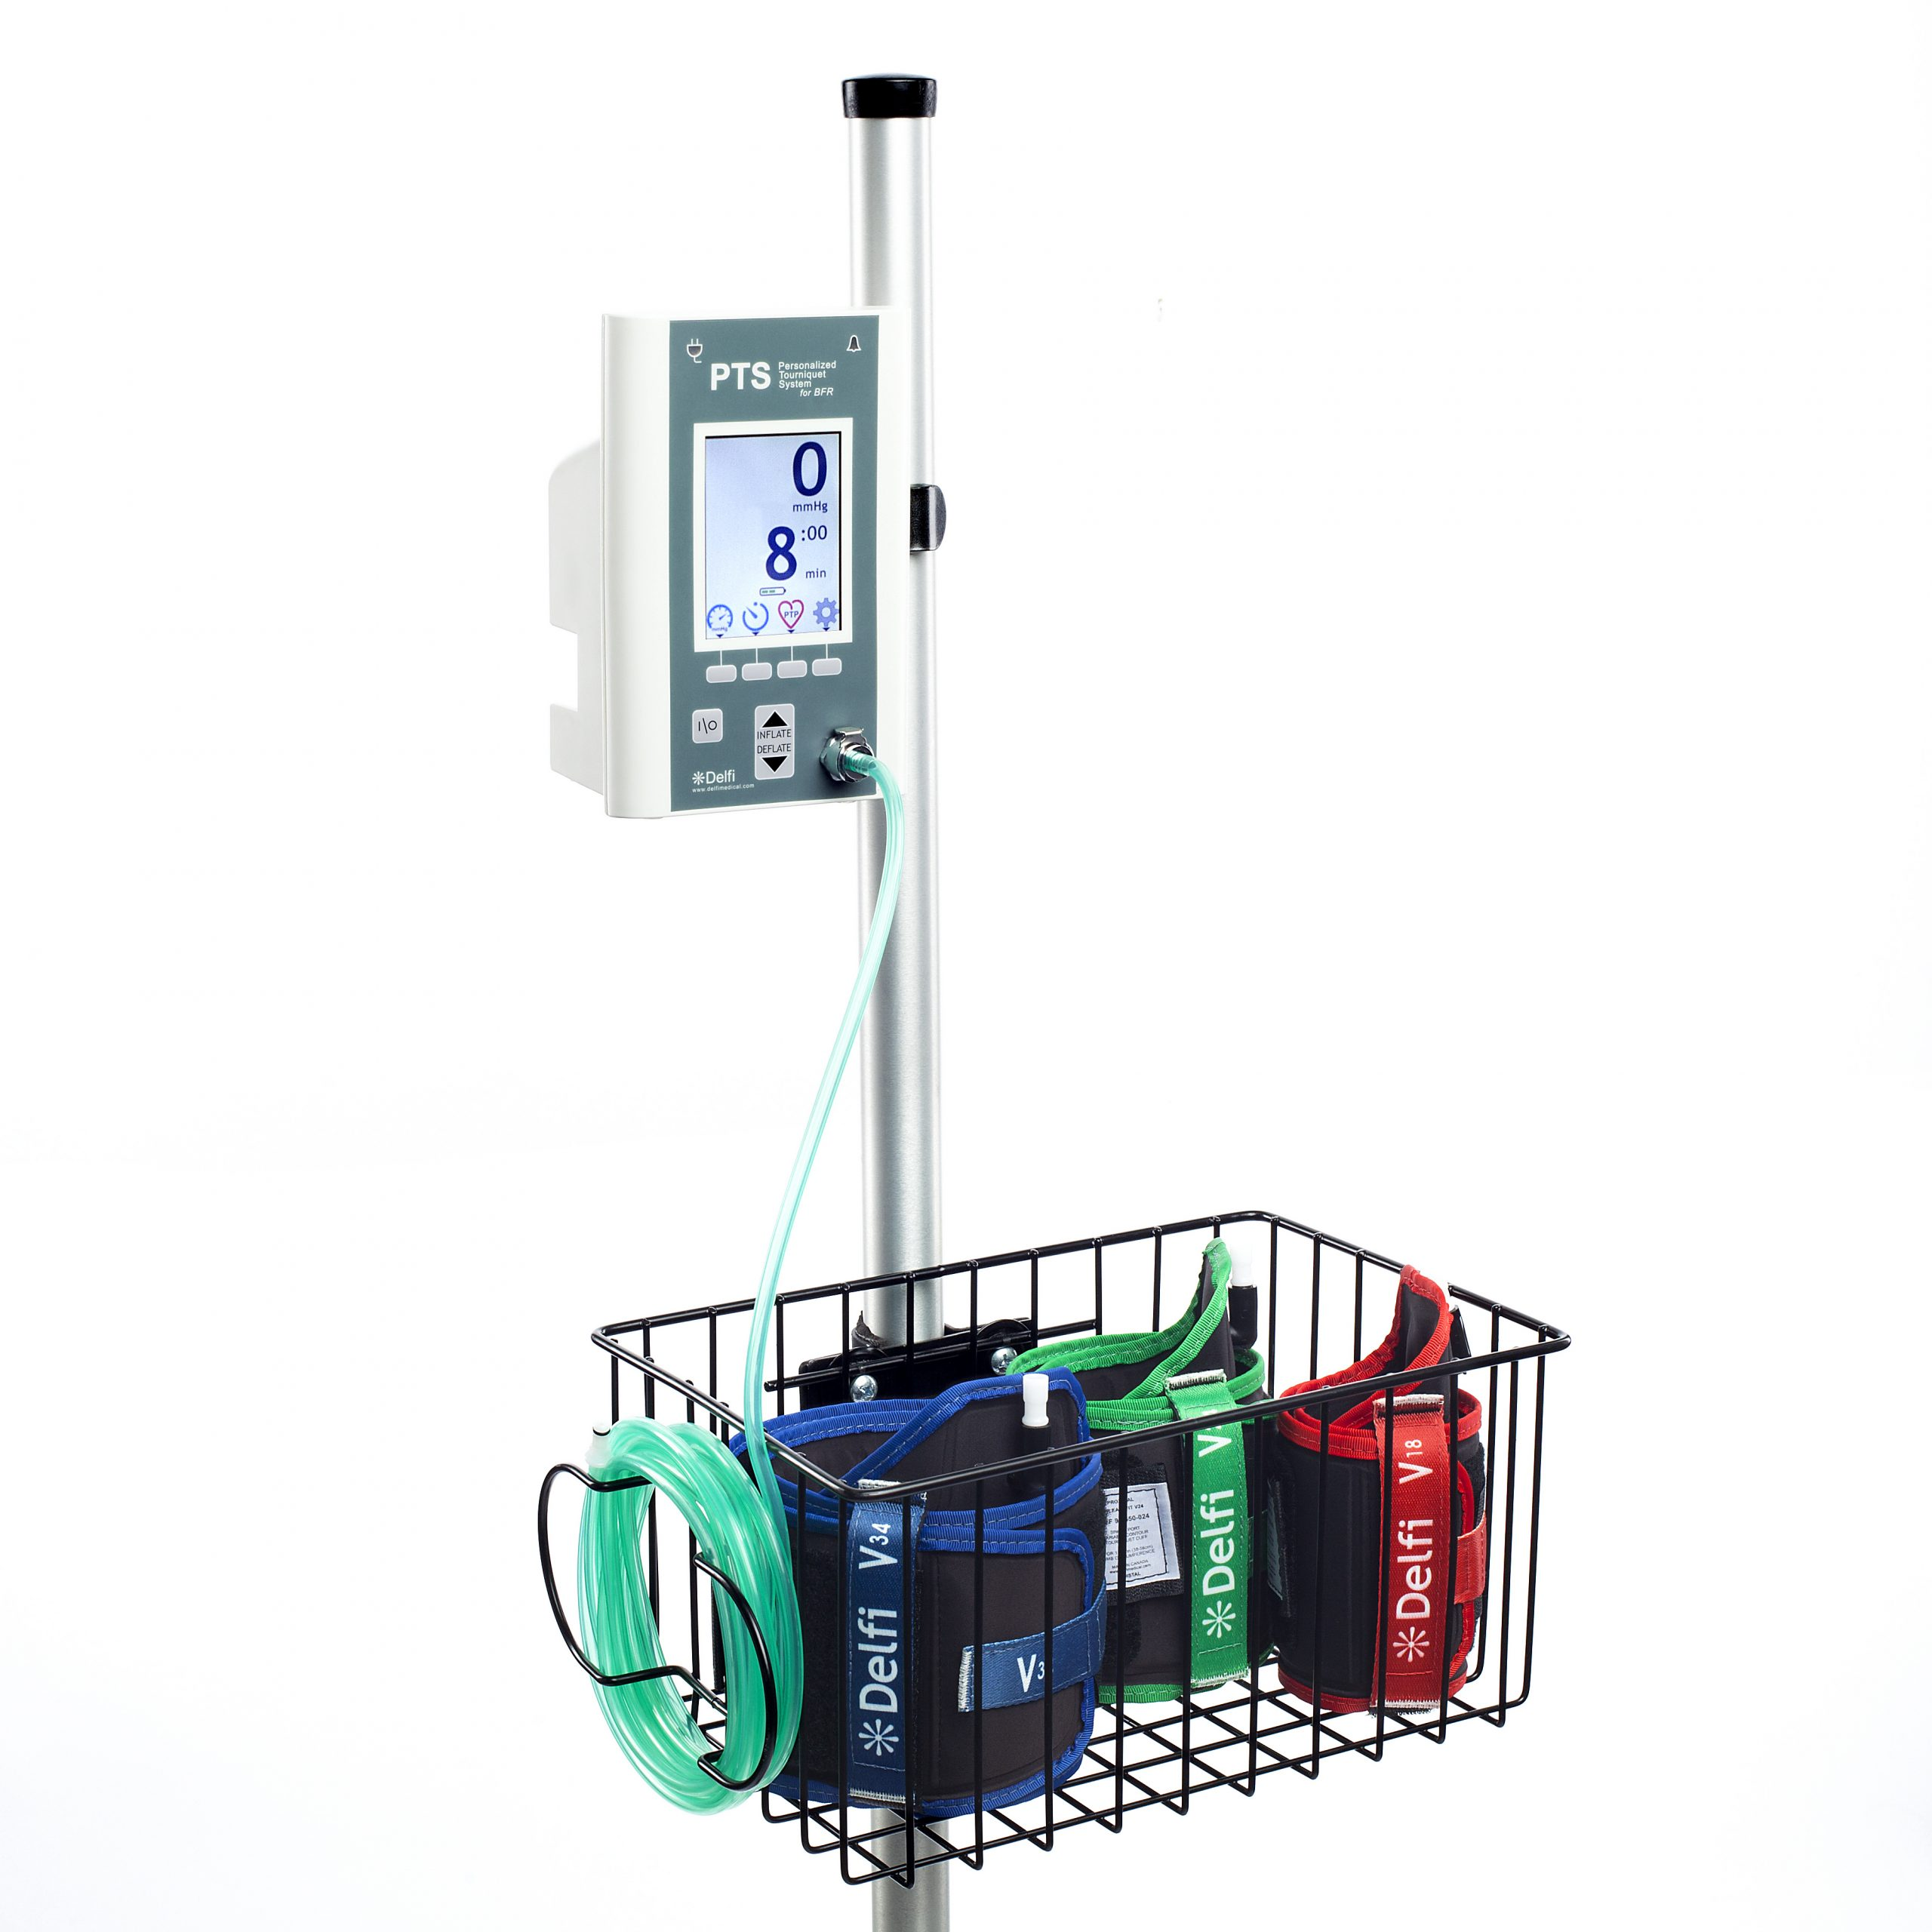 A blood flow restriction kit hangs on a rolling stand ready for BFR therapy